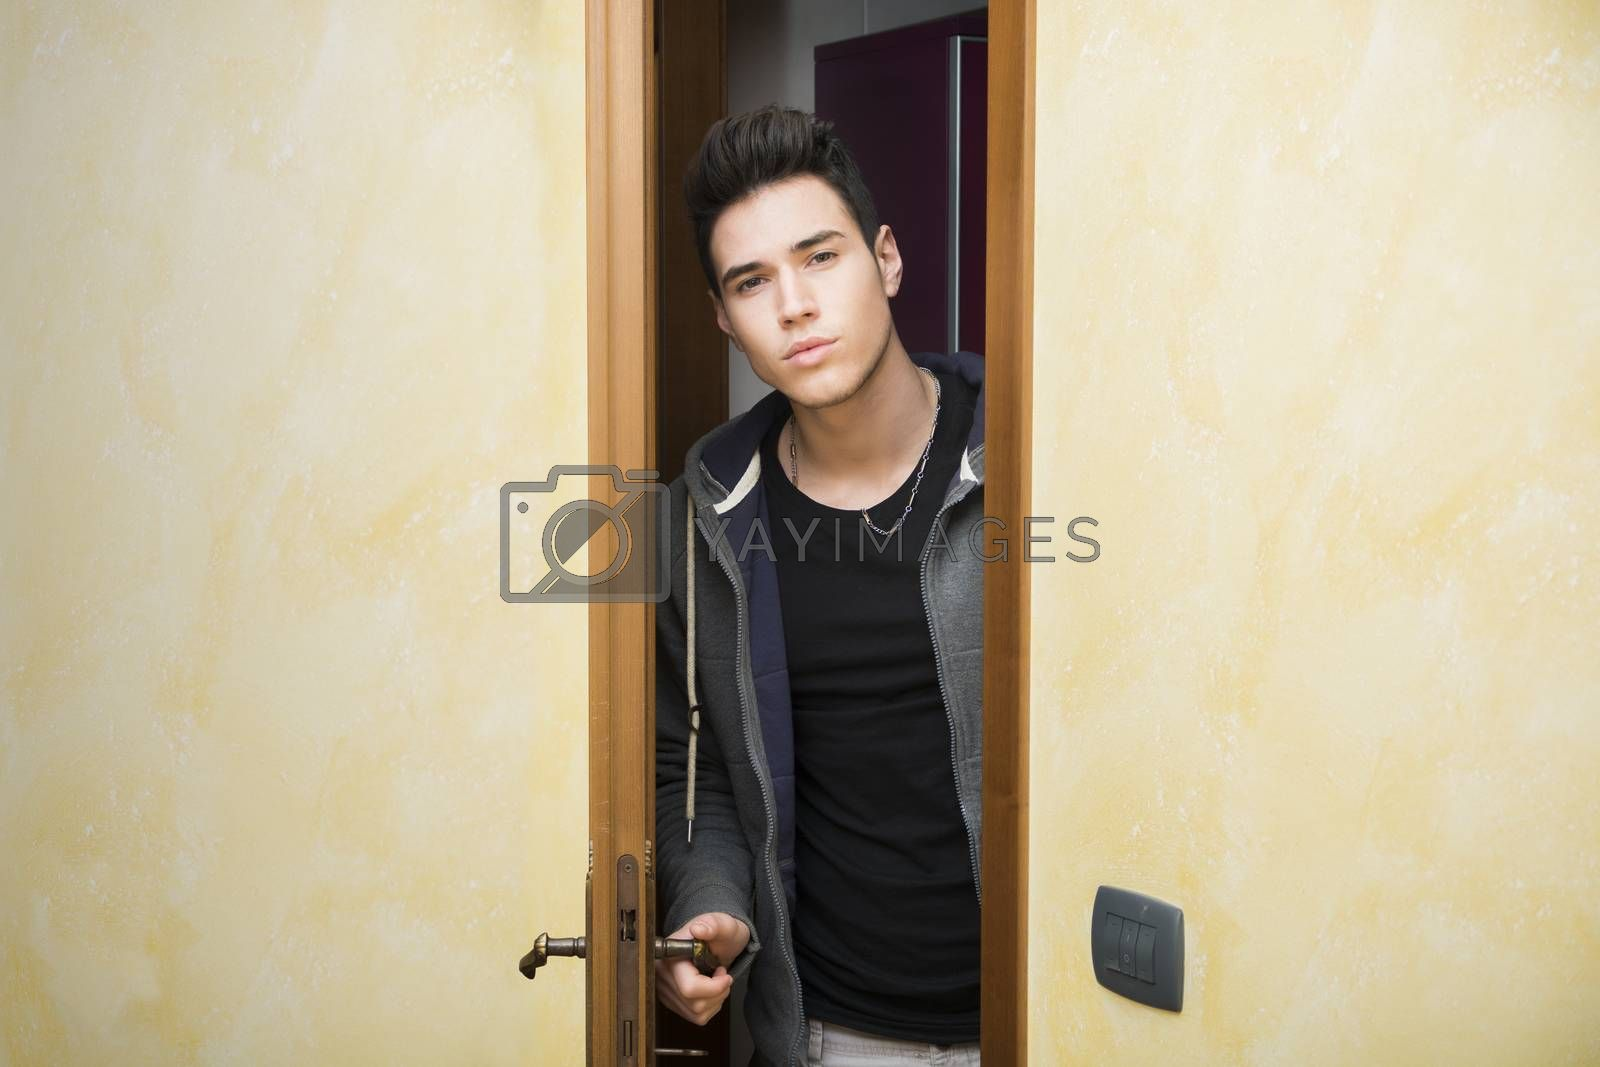 Handsome young man opening door to enter into a room, looking at camera